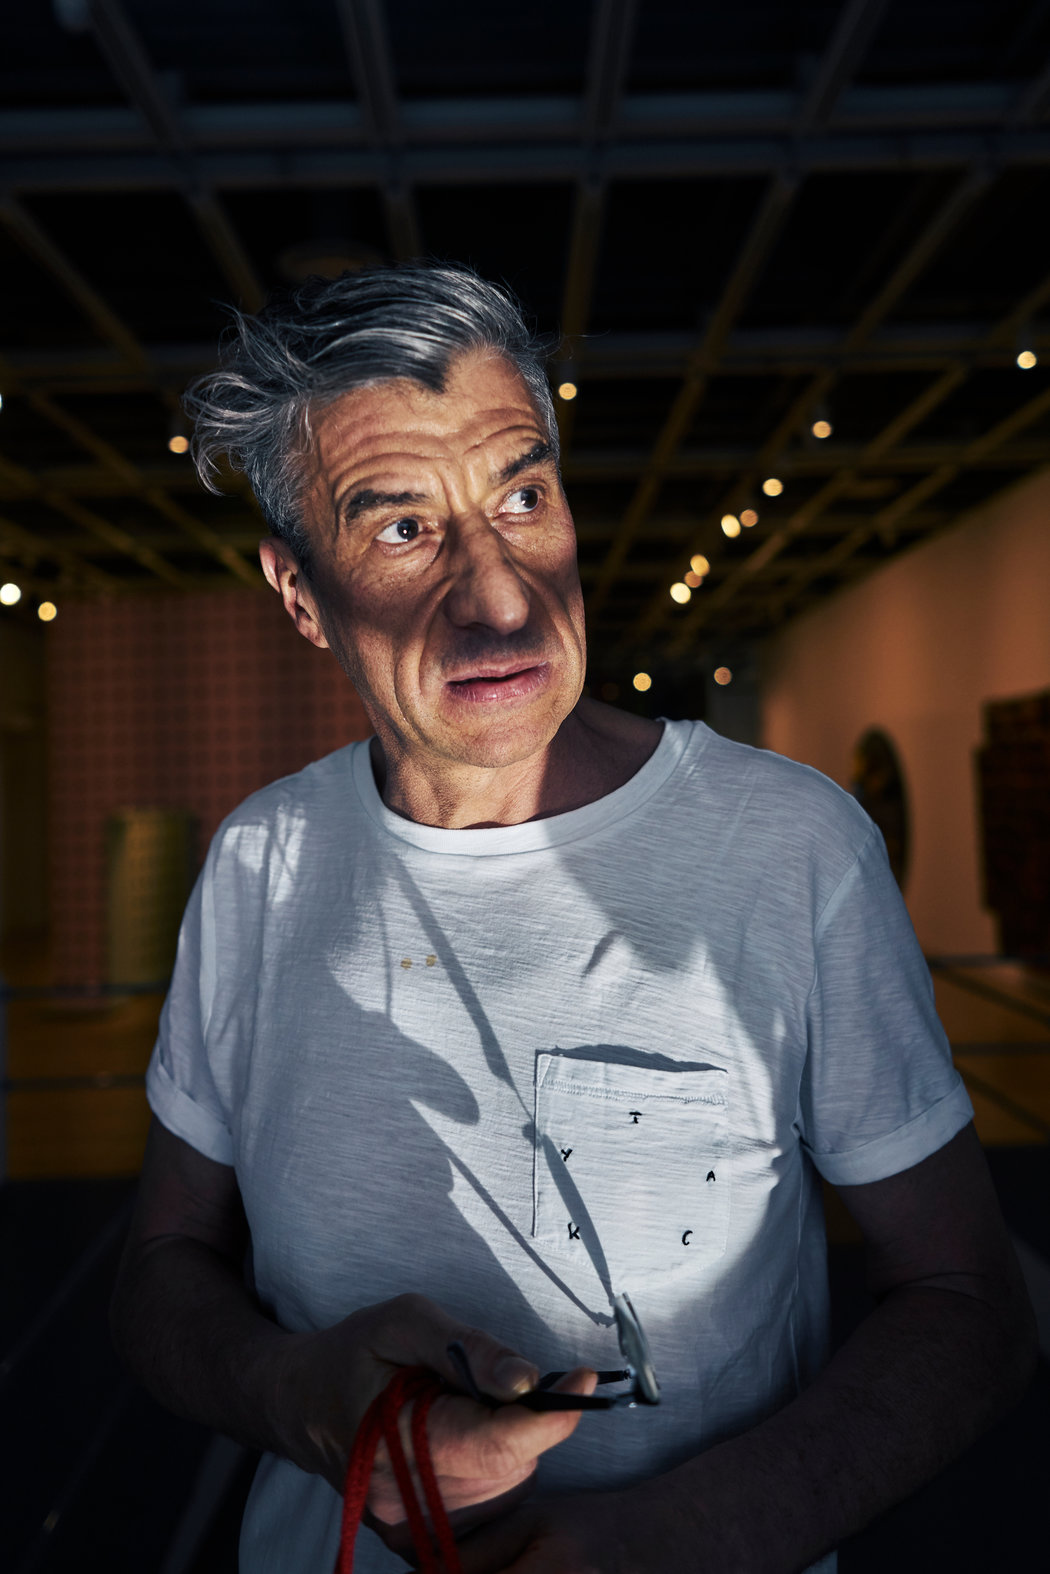 all maurizio cattelan From 7 november to 10 january 2015 venus over manhattan and sotheby's s|2 (30 october – 26 november 2014) will present cosa nostra, the first major exhibition of maurizio cattelan's work since maurizio cattelan: all, the 2011/12 guggenheim retrospective, and the artist's subsequent retirement curated by adam lindemann, this exhibition .